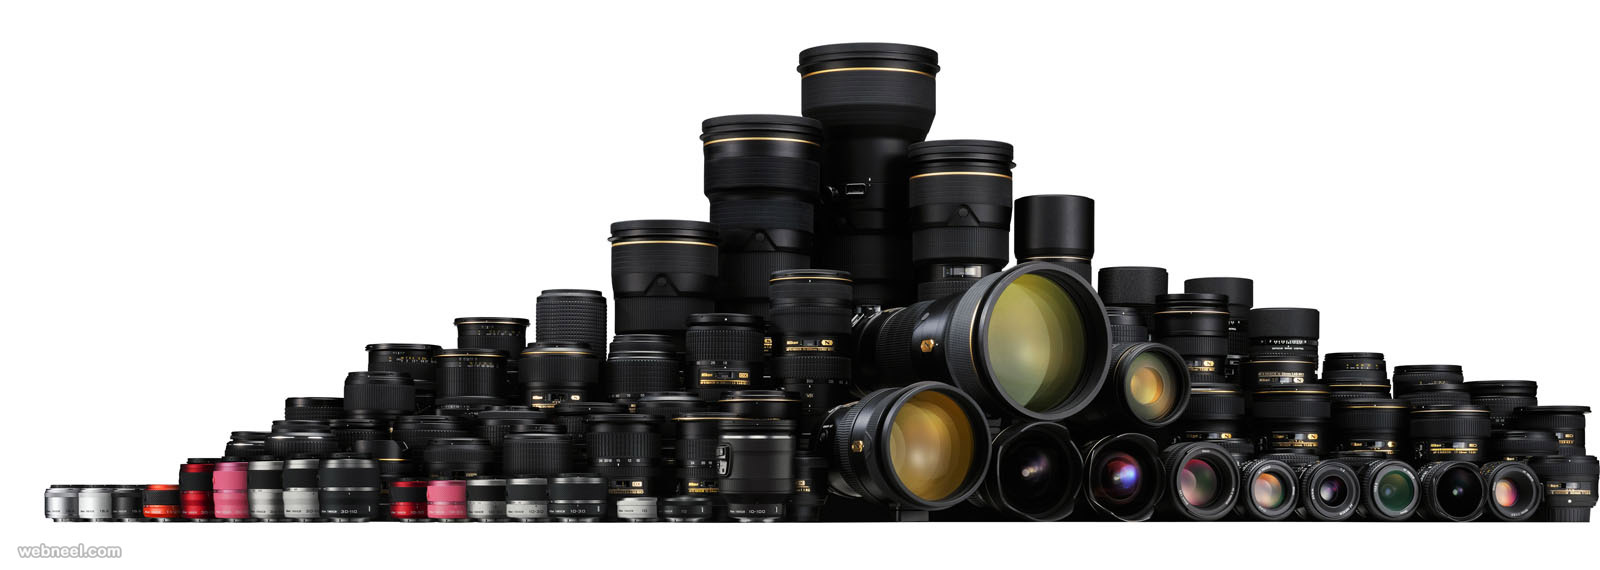 nikkor camera lenses